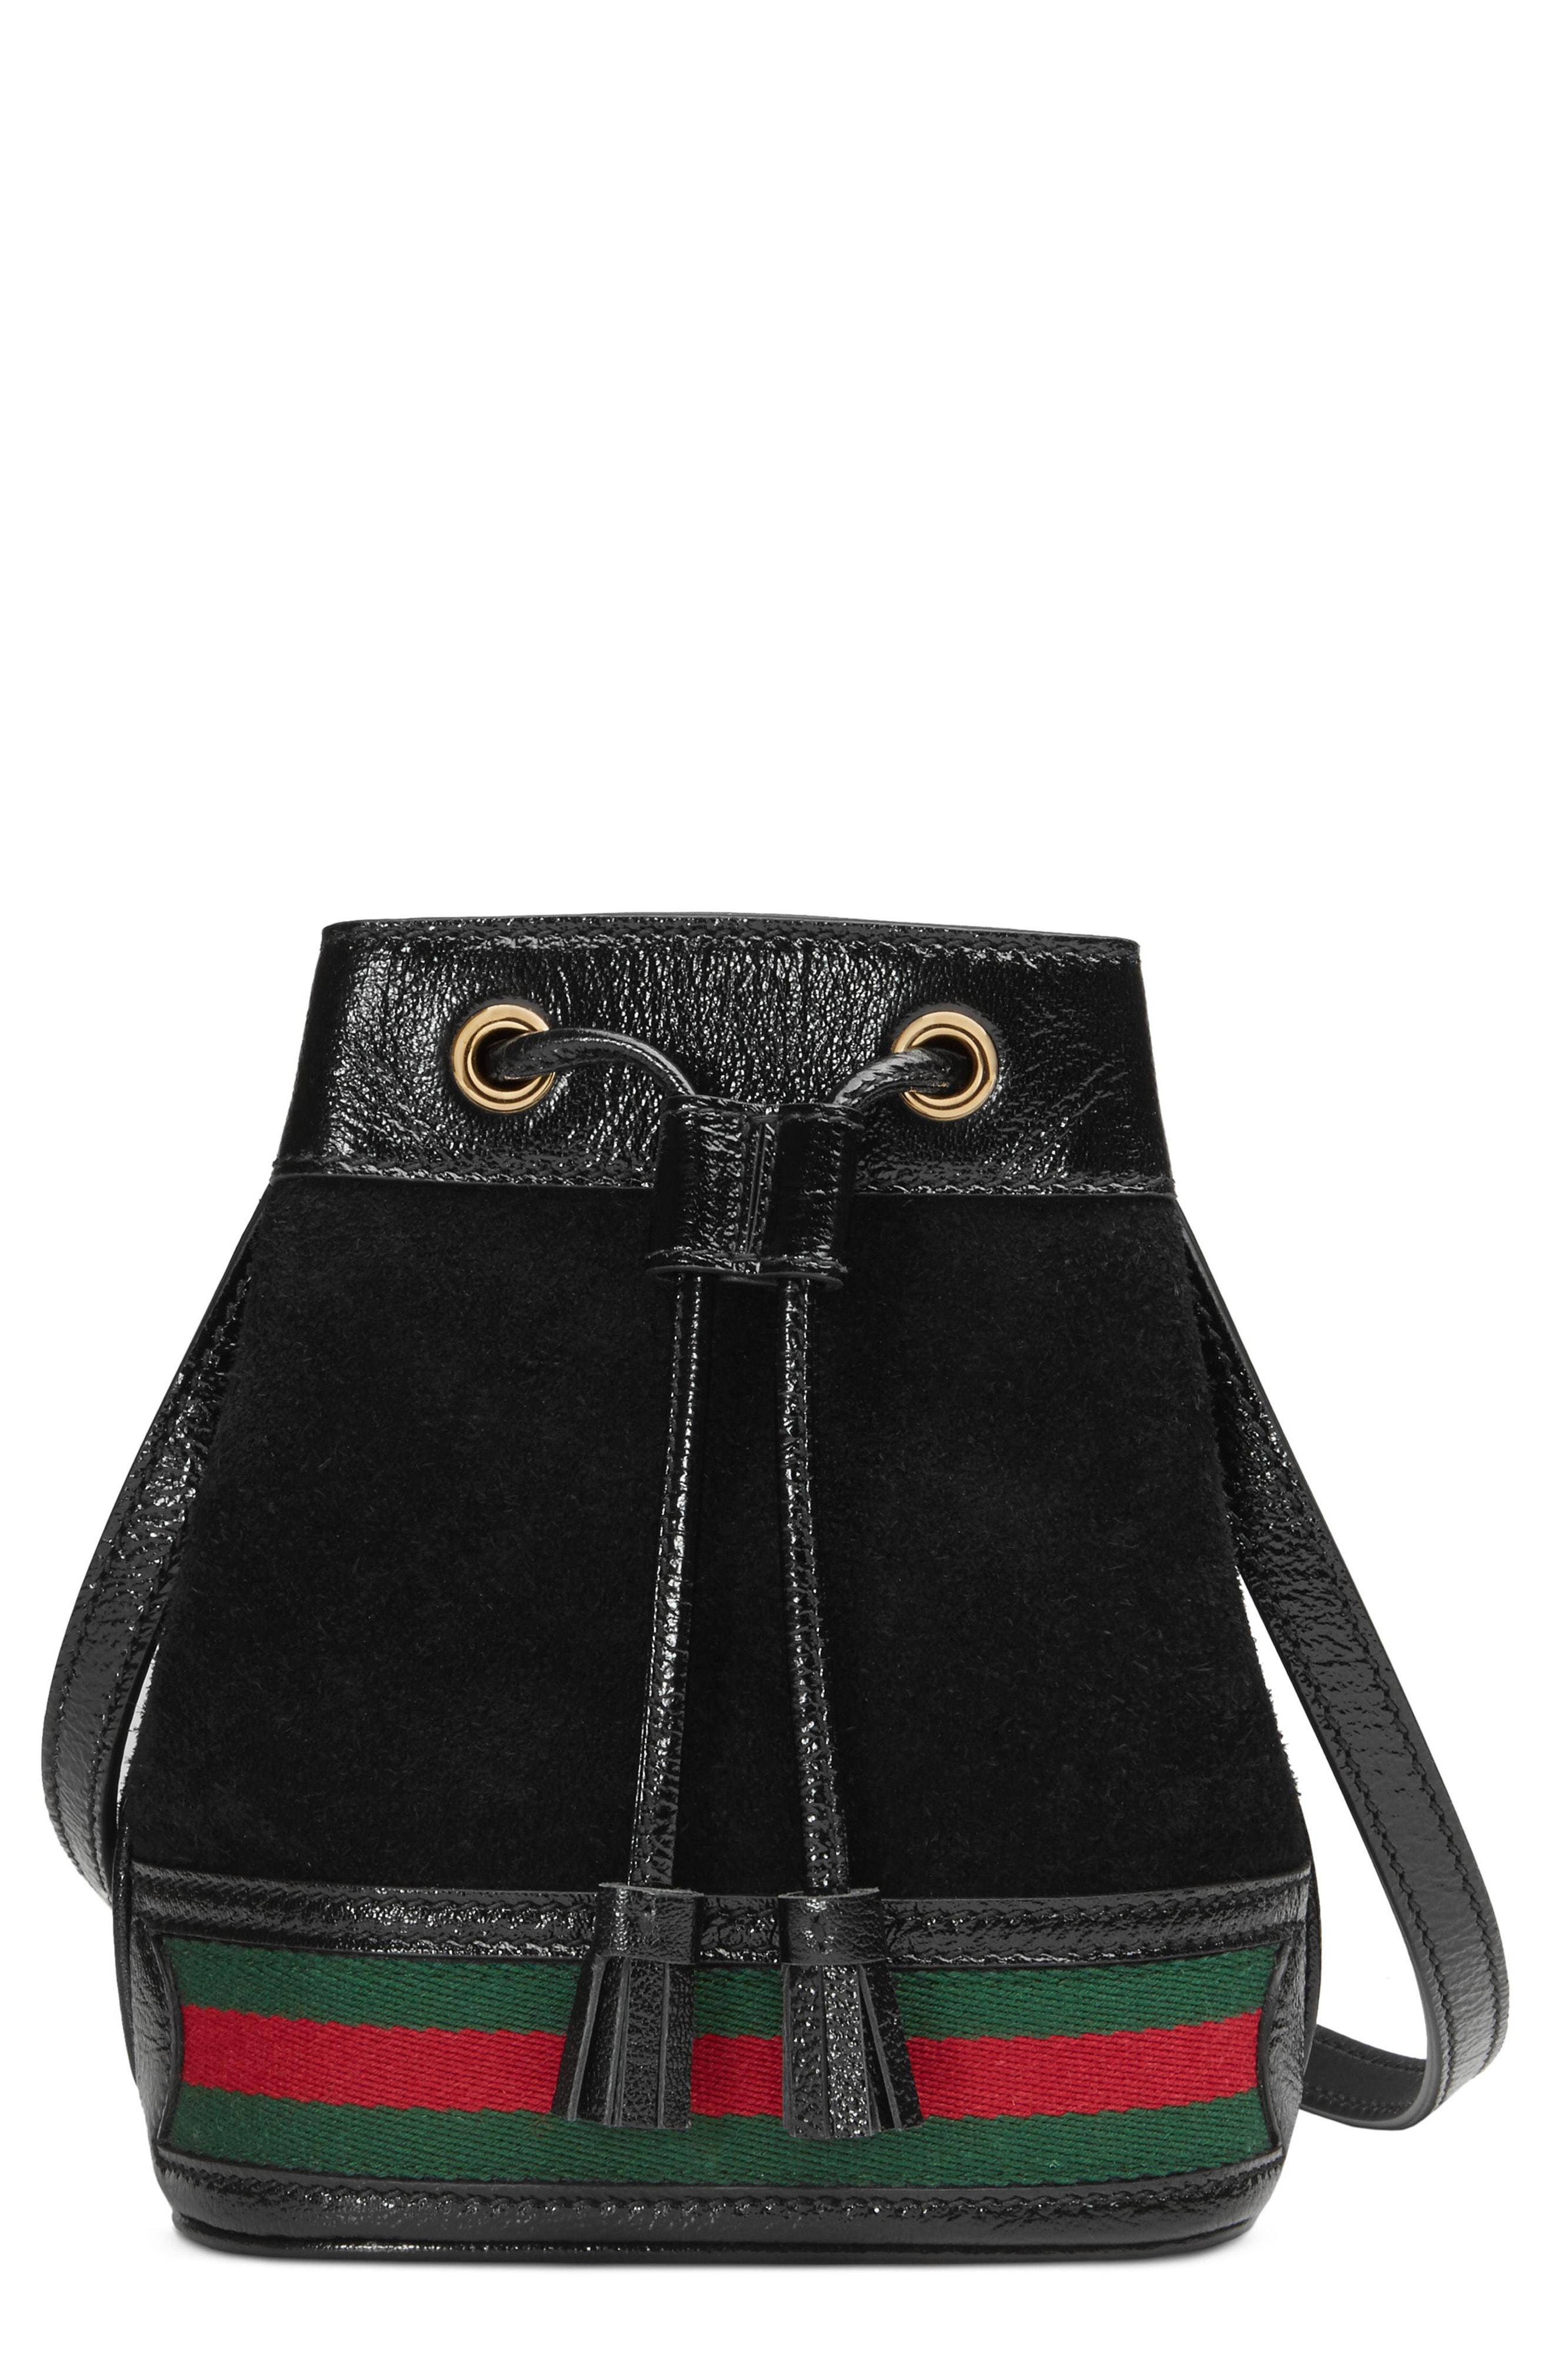 Lyst - Gucci Mini Ophidia Suede   Leather Bucket Bag - in Black acd44b0827